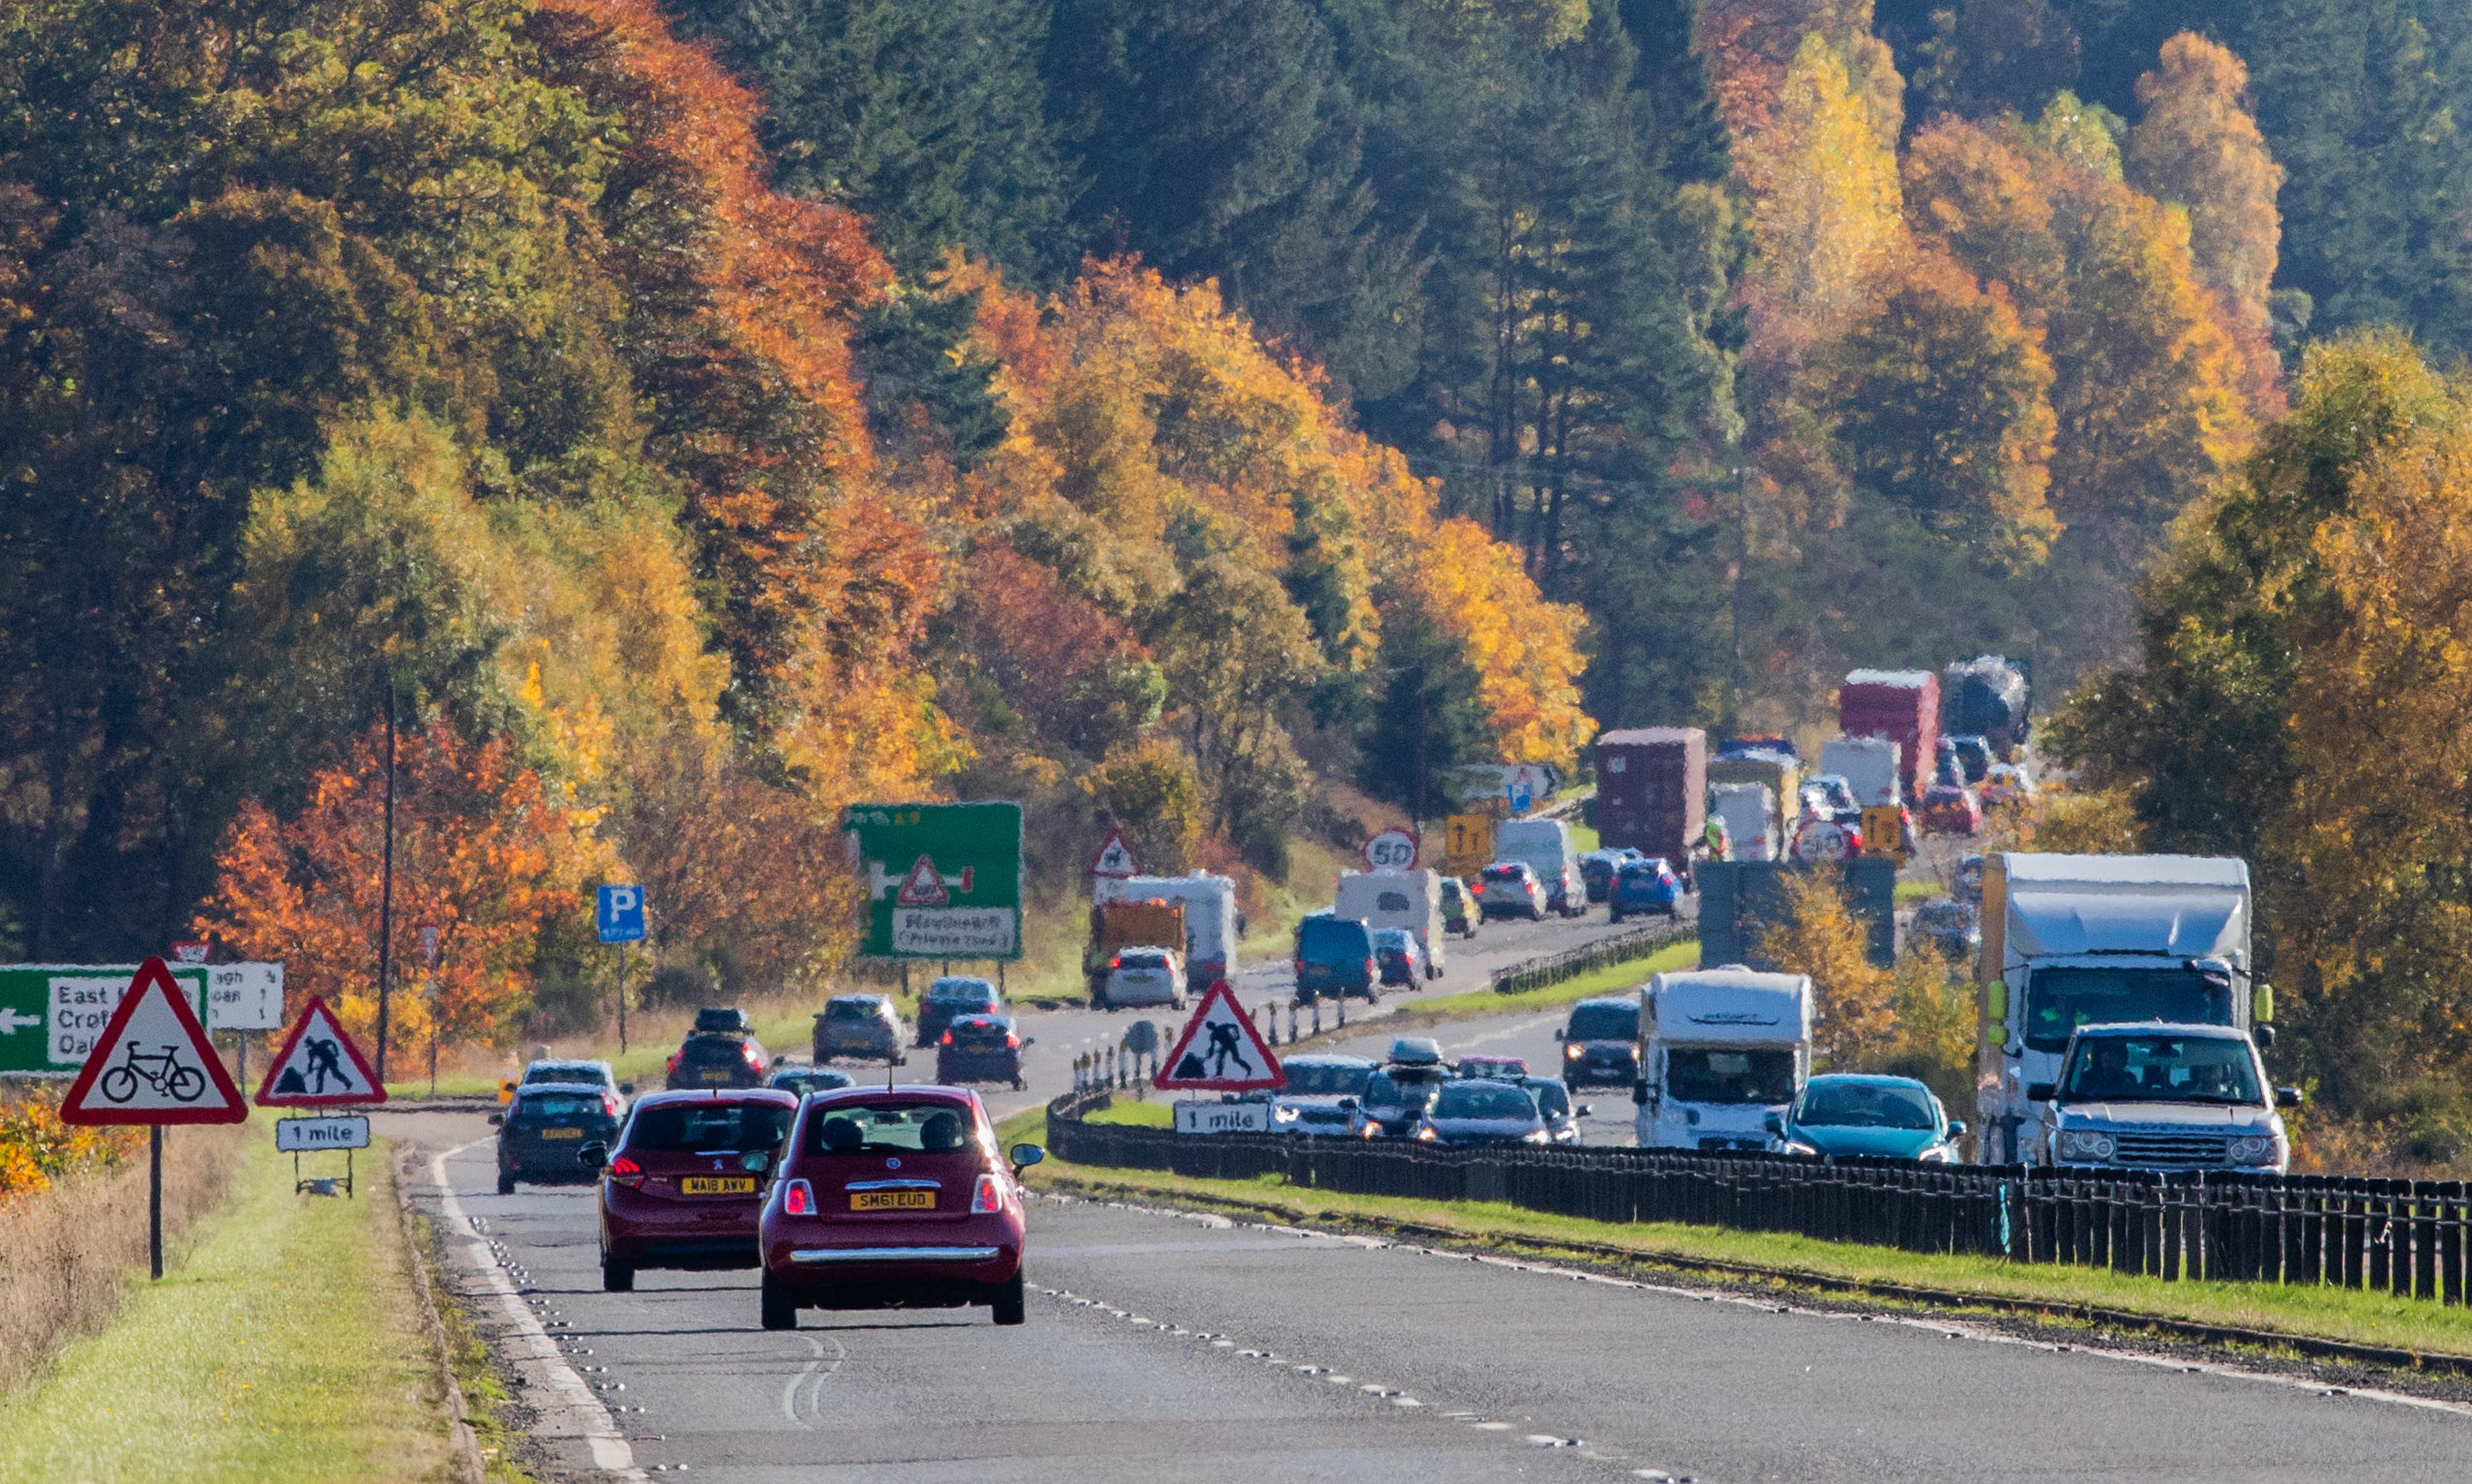 The A9 Southbound, between Pitlochry and Ballinluig.